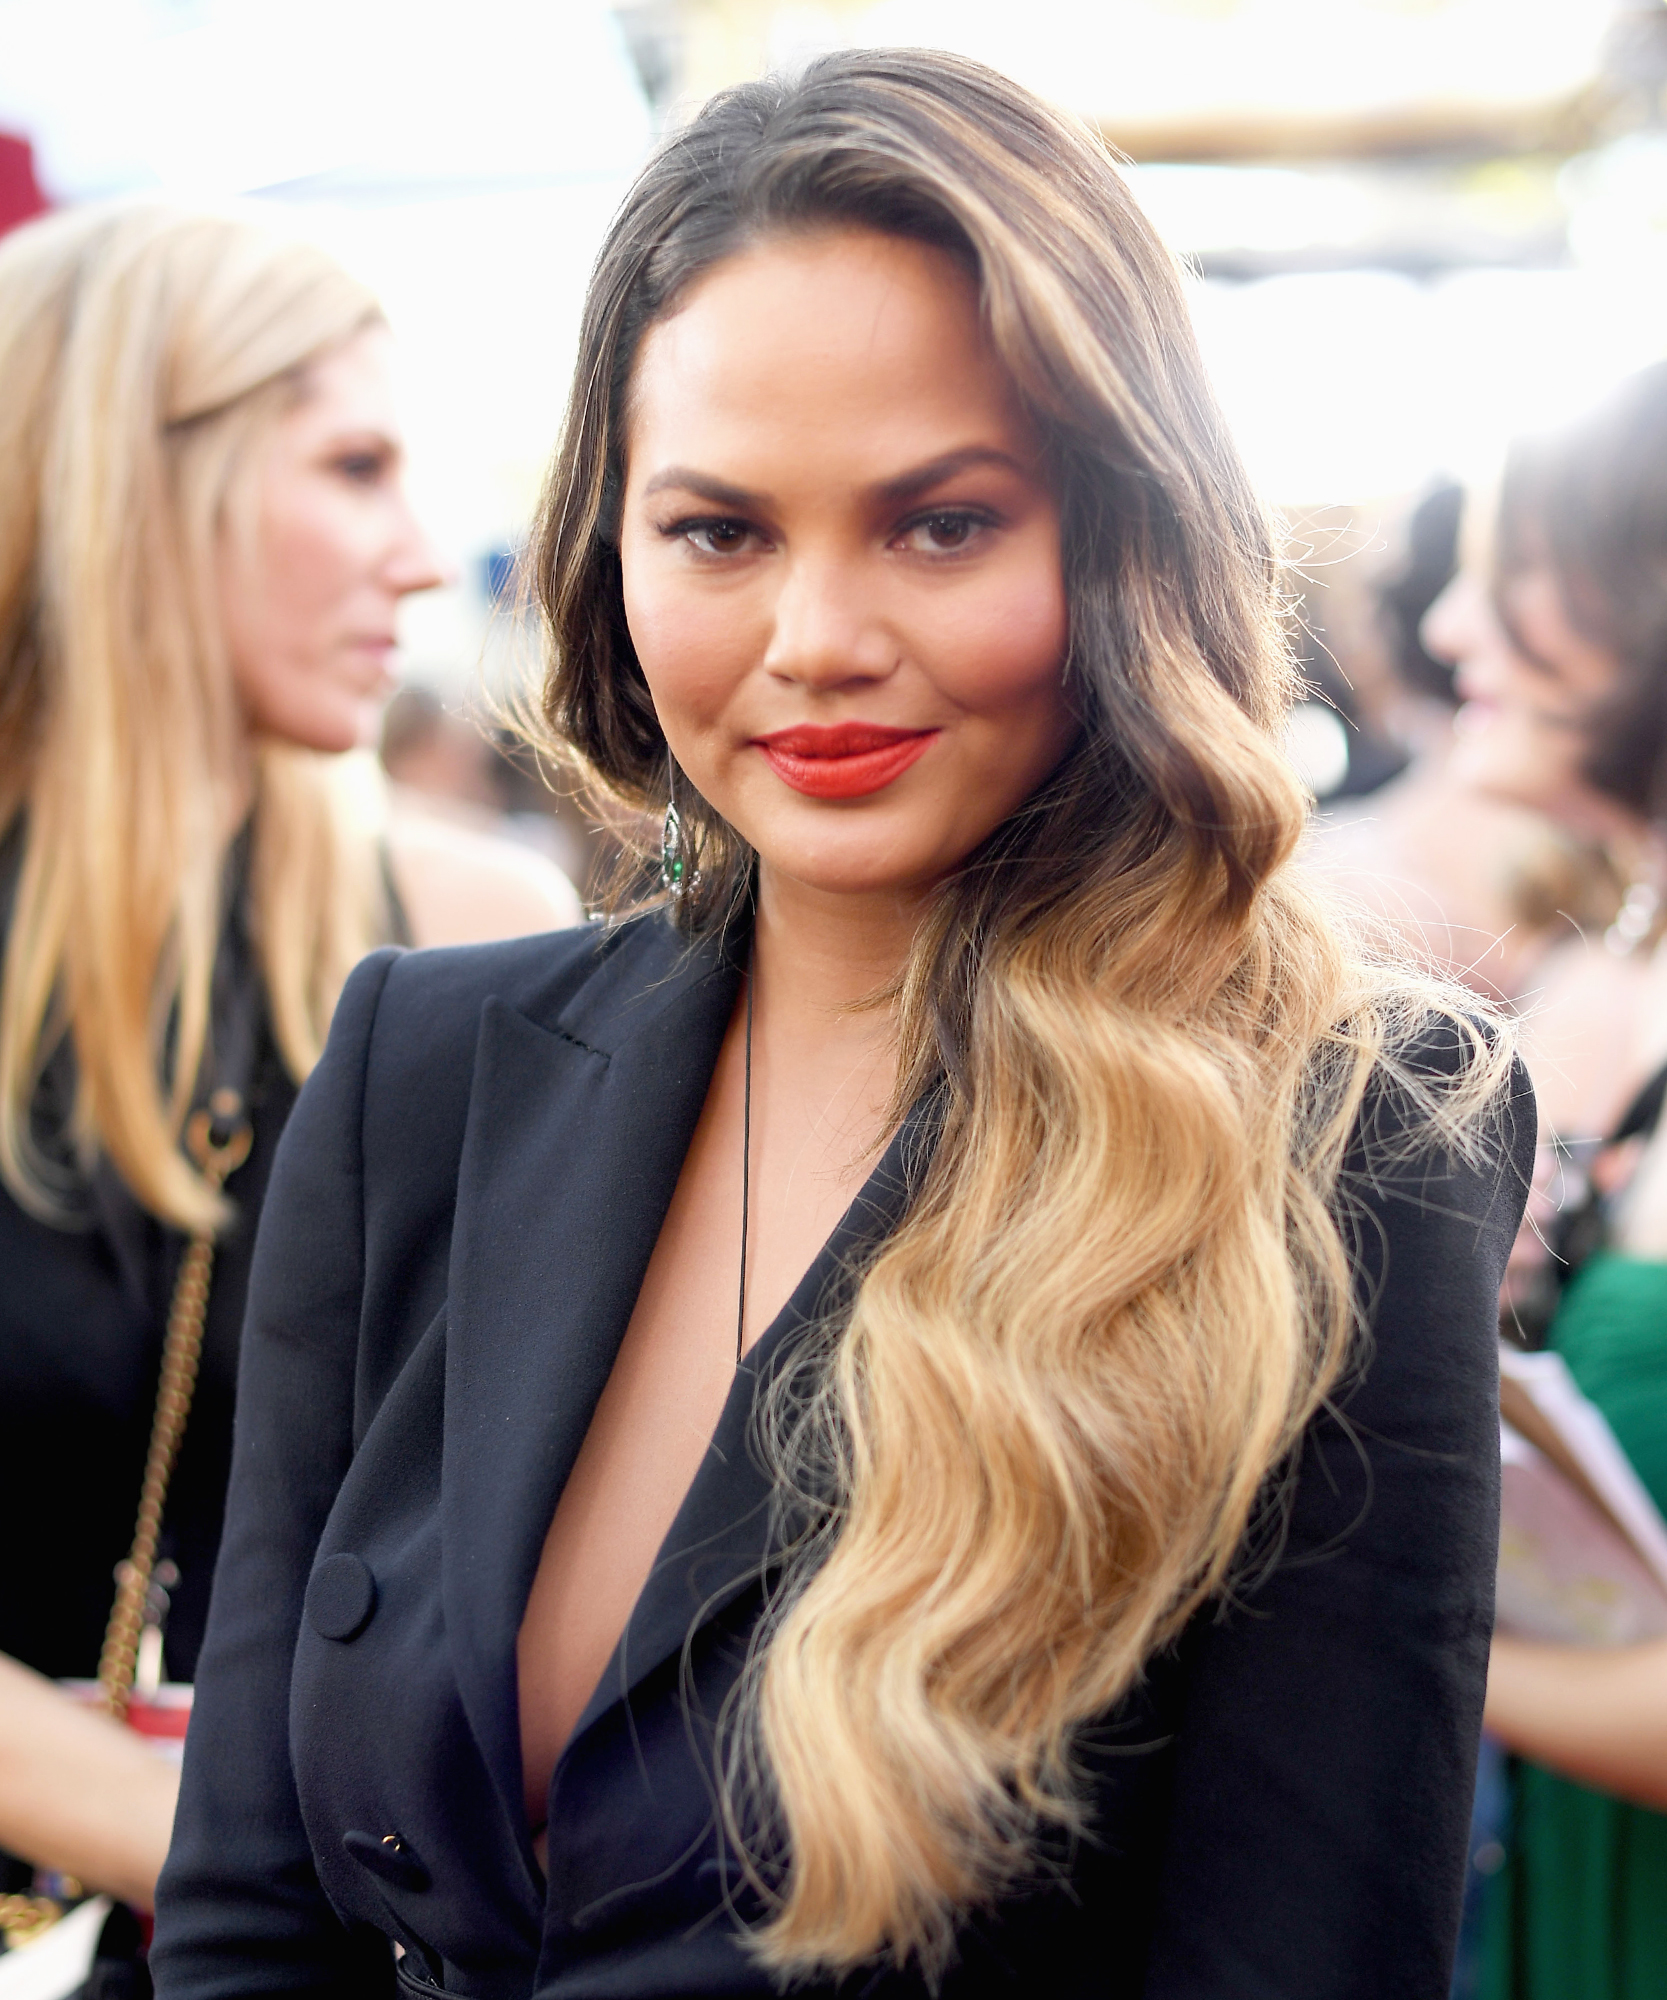 SAG 2017 Chrissy Teigen Getting Ready - Lead 2017